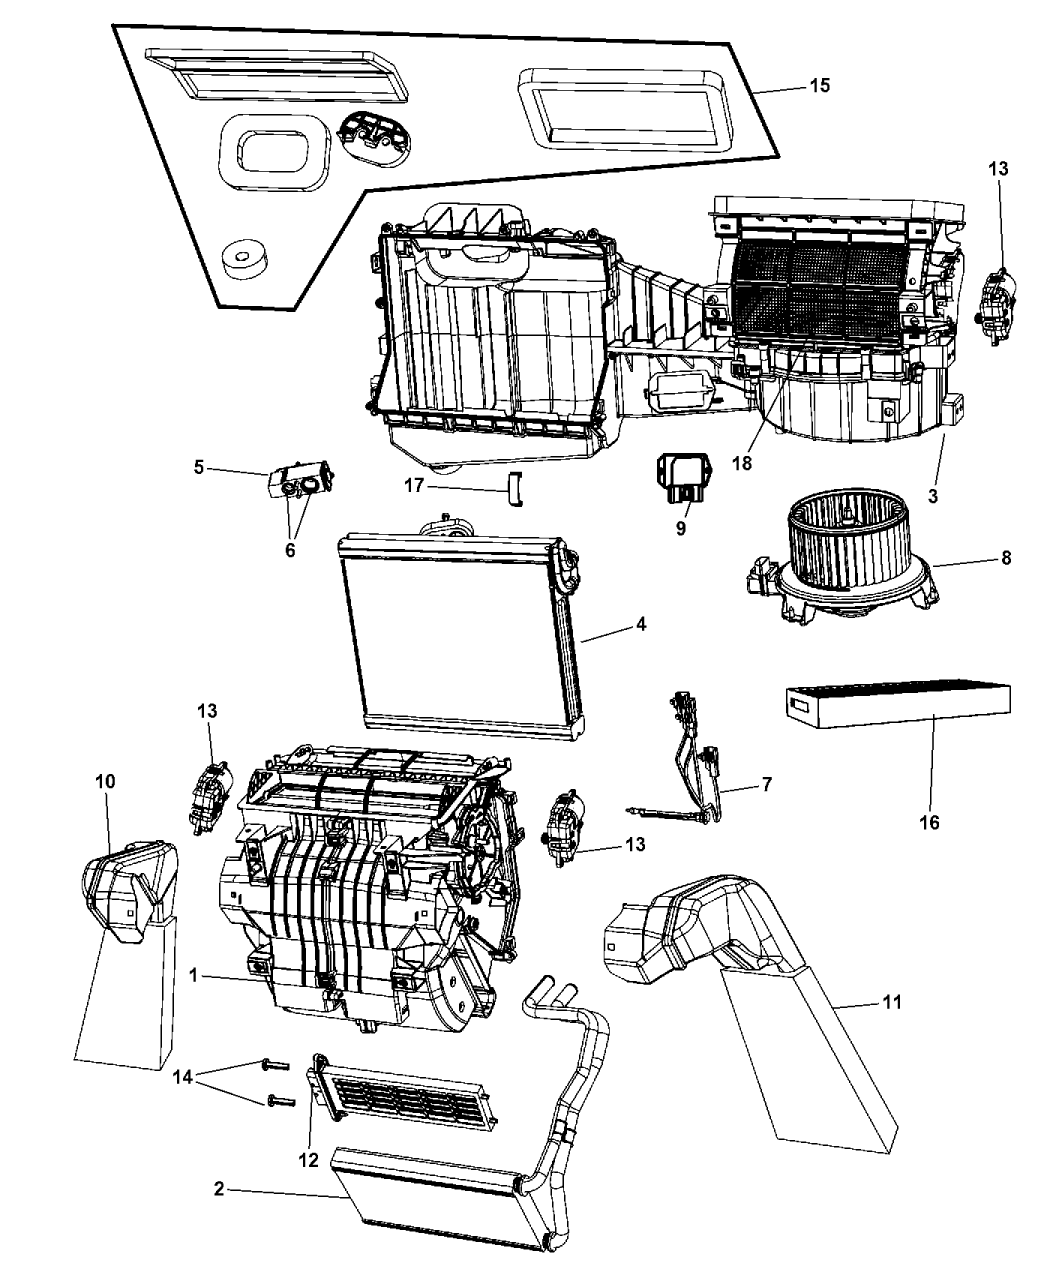 2013 wrangler engine diagram